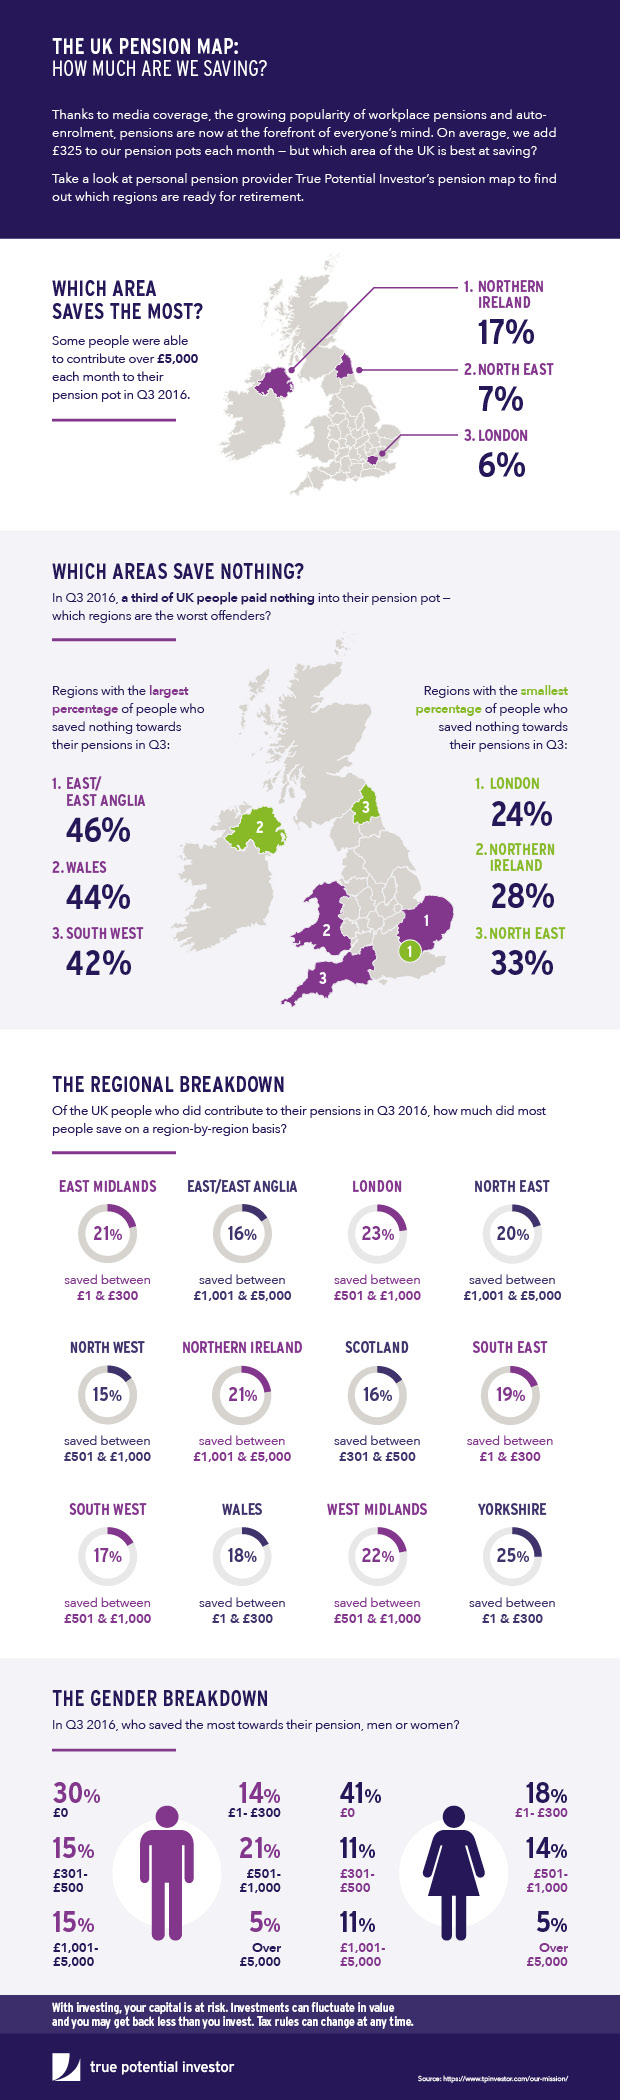 Pension In The UK - Infographic